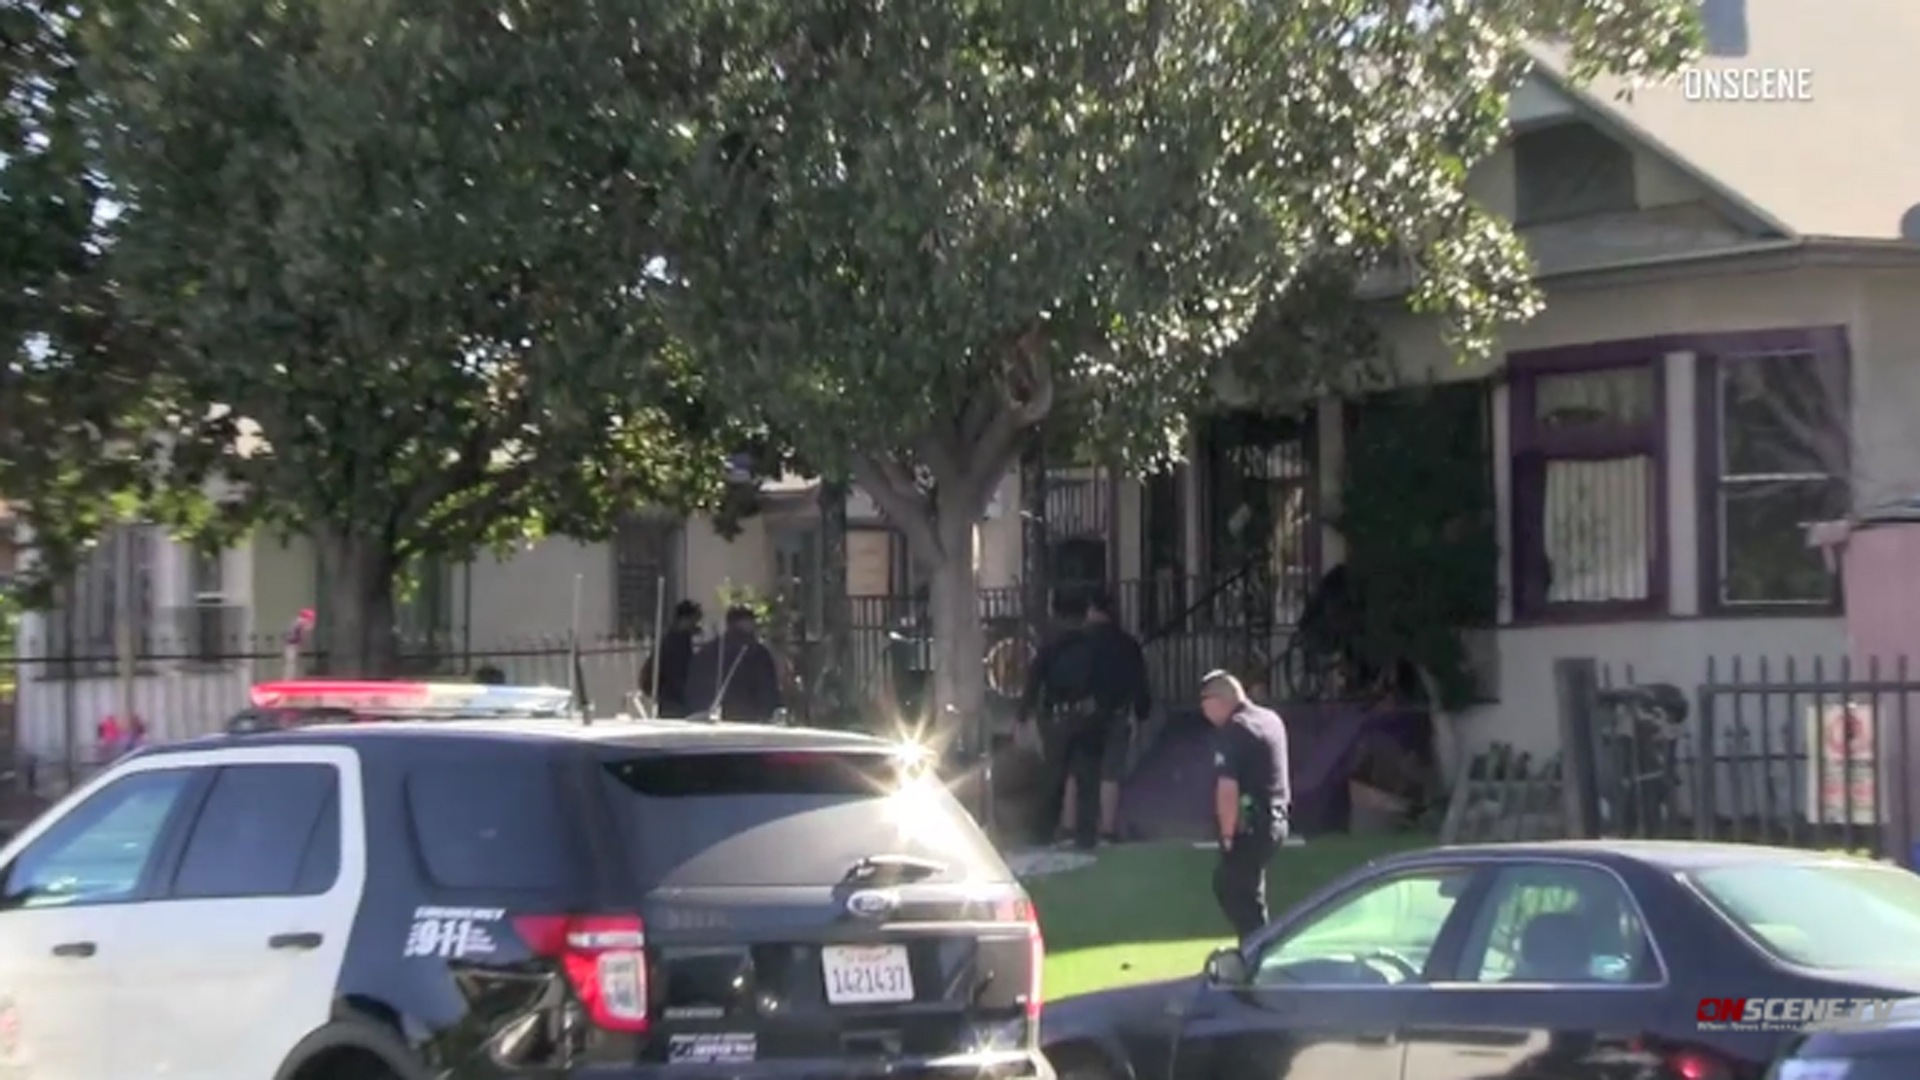 Police responded to a home in South L.A. after a 4-year-old girl died in a hospital on Dec. 2, 2018. (Credit: OnSceneTv)